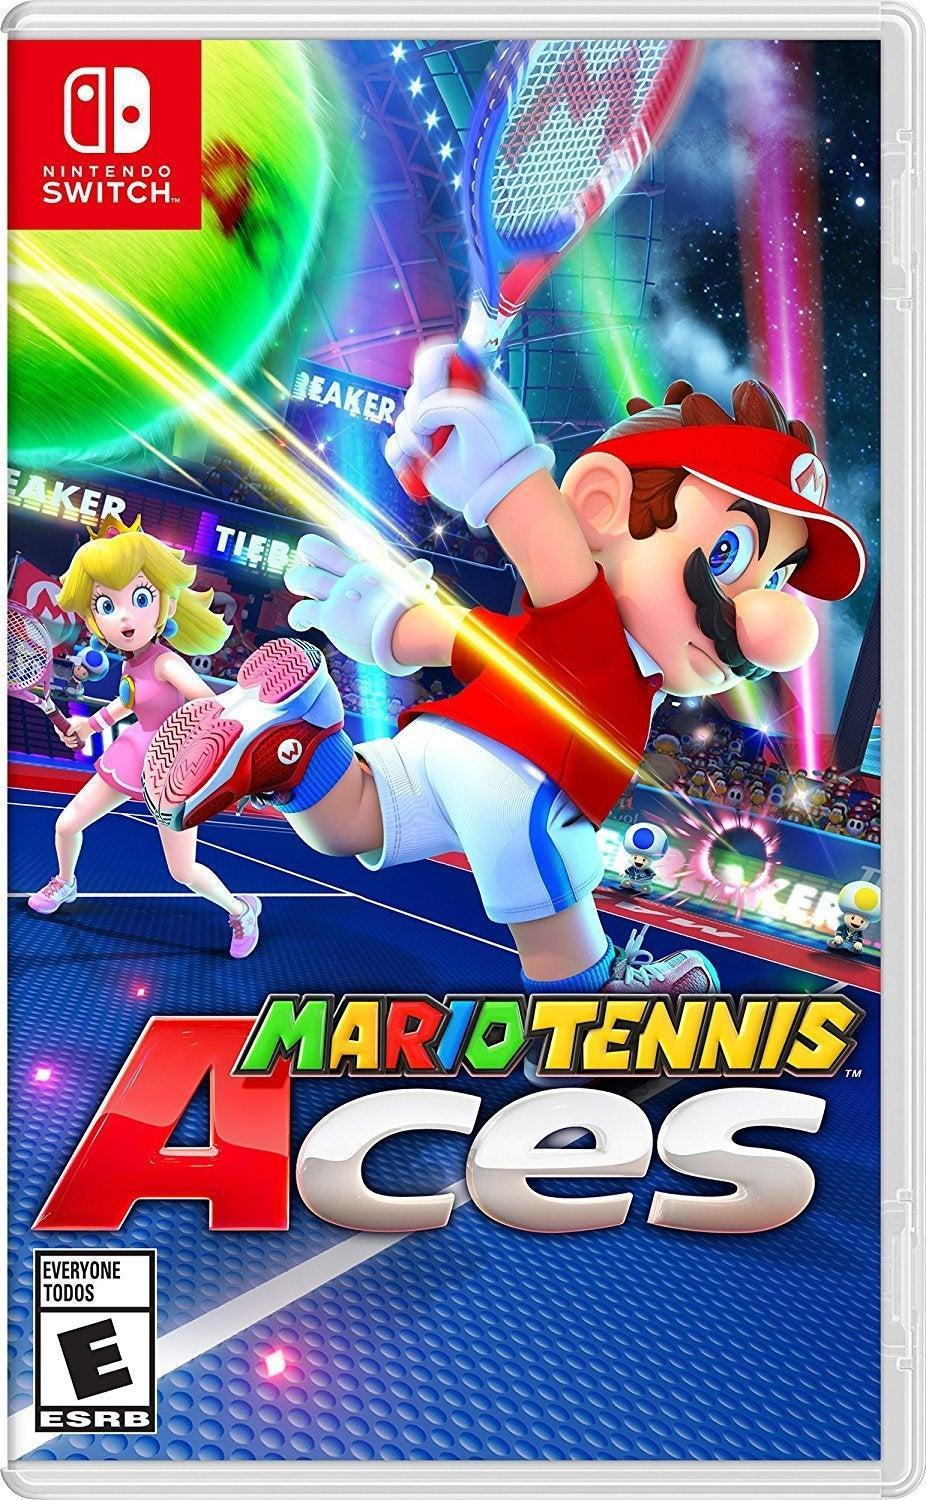 """<h2>33% Off Nintendo Mario Tennis Aces<br></h2><br>""""At this point, I wish I'd purchased stock in Nintendo at the beginning of quarantine. Between Animal Crossing mania and everyone and their mama jostling to get a console for boredom-busting benefits, 2020 will surely go down as the year where <a href=""""https://www.refinery29.com/en-us/2020/10/10093203/prime-day-video-games-deals-discounts"""" rel=""""nofollow noopener"""" target=""""_blank"""" data-ylk=""""slk:video games"""" class=""""link rapid-noclick-resp"""">video games</a> enjoyed a mainstream renaissance not seen since Wii bowling and Guitar Hero. One title I gleefully snapped up is Mario Tennis Aces, which is a somewhat under-the-radar game in the universe of our fave 'stacie-wearing Italian plumbers. My boyfriend and I (still!) play Mario Tennis on his retro Nintendo 64, but something tells me this souped-up relaunch will be keeping us busy until the New Year."""" <br><br><em>— Karina Hoshikawa, Beauty and Wellness Writer</em><br><br><strong>Nintendo</strong> Mario Tennis Aces, $, available at <a href=""""https://amzn.to/3iRV909"""" rel=""""nofollow noopener"""" target=""""_blank"""" data-ylk=""""slk:Amazon"""" class=""""link rapid-noclick-resp"""">Amazon</a>"""